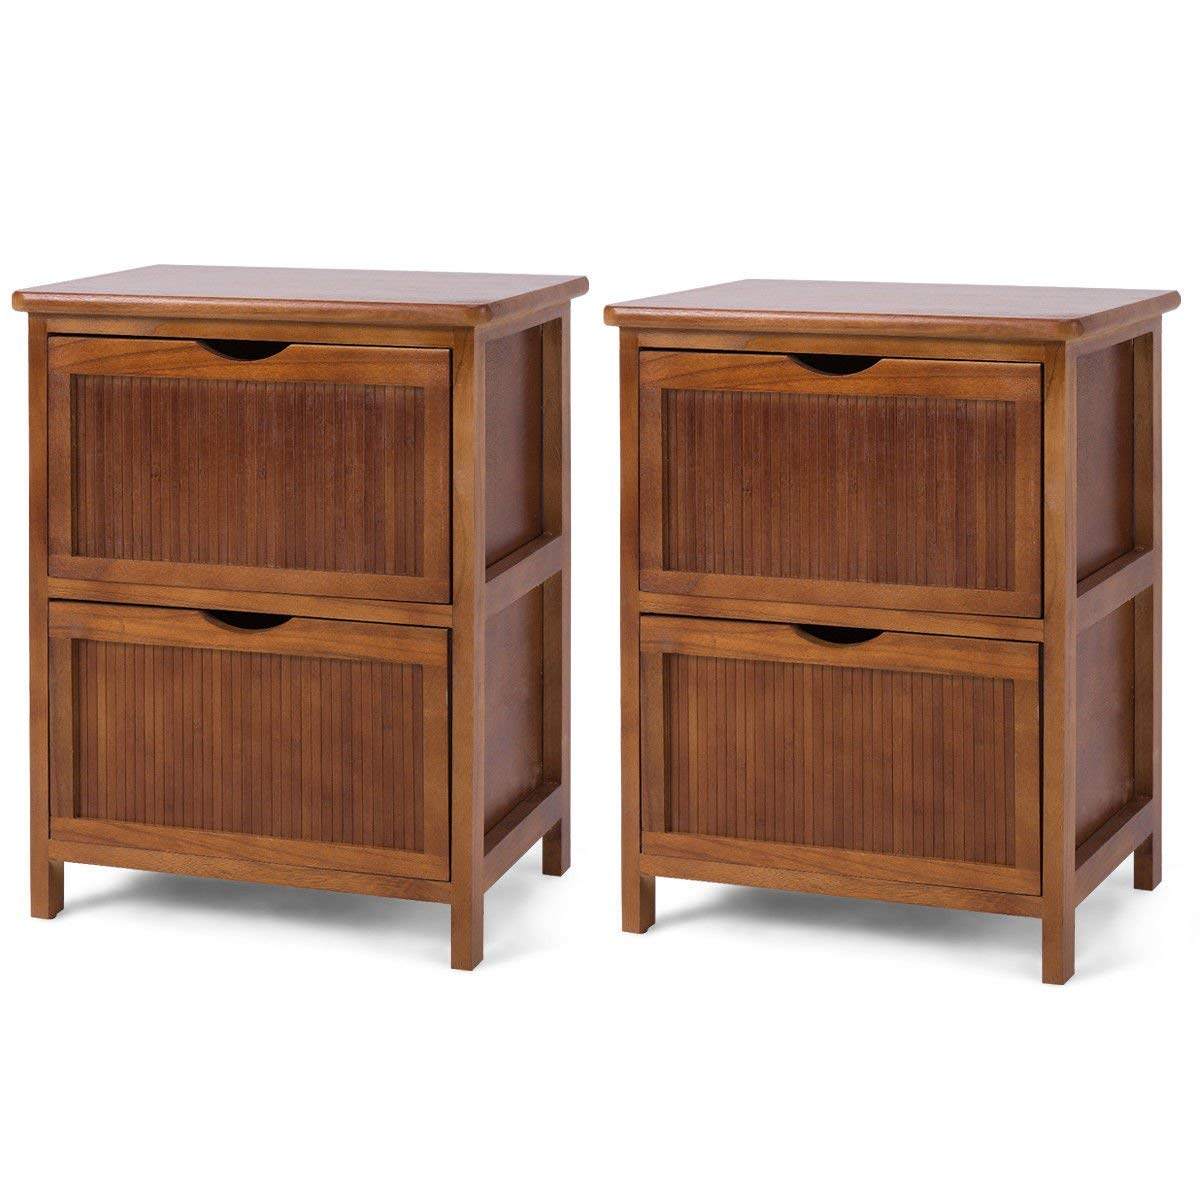 Nightstand Contemporary Bedside Table Solid Wood End Table Drawers 2 PCS